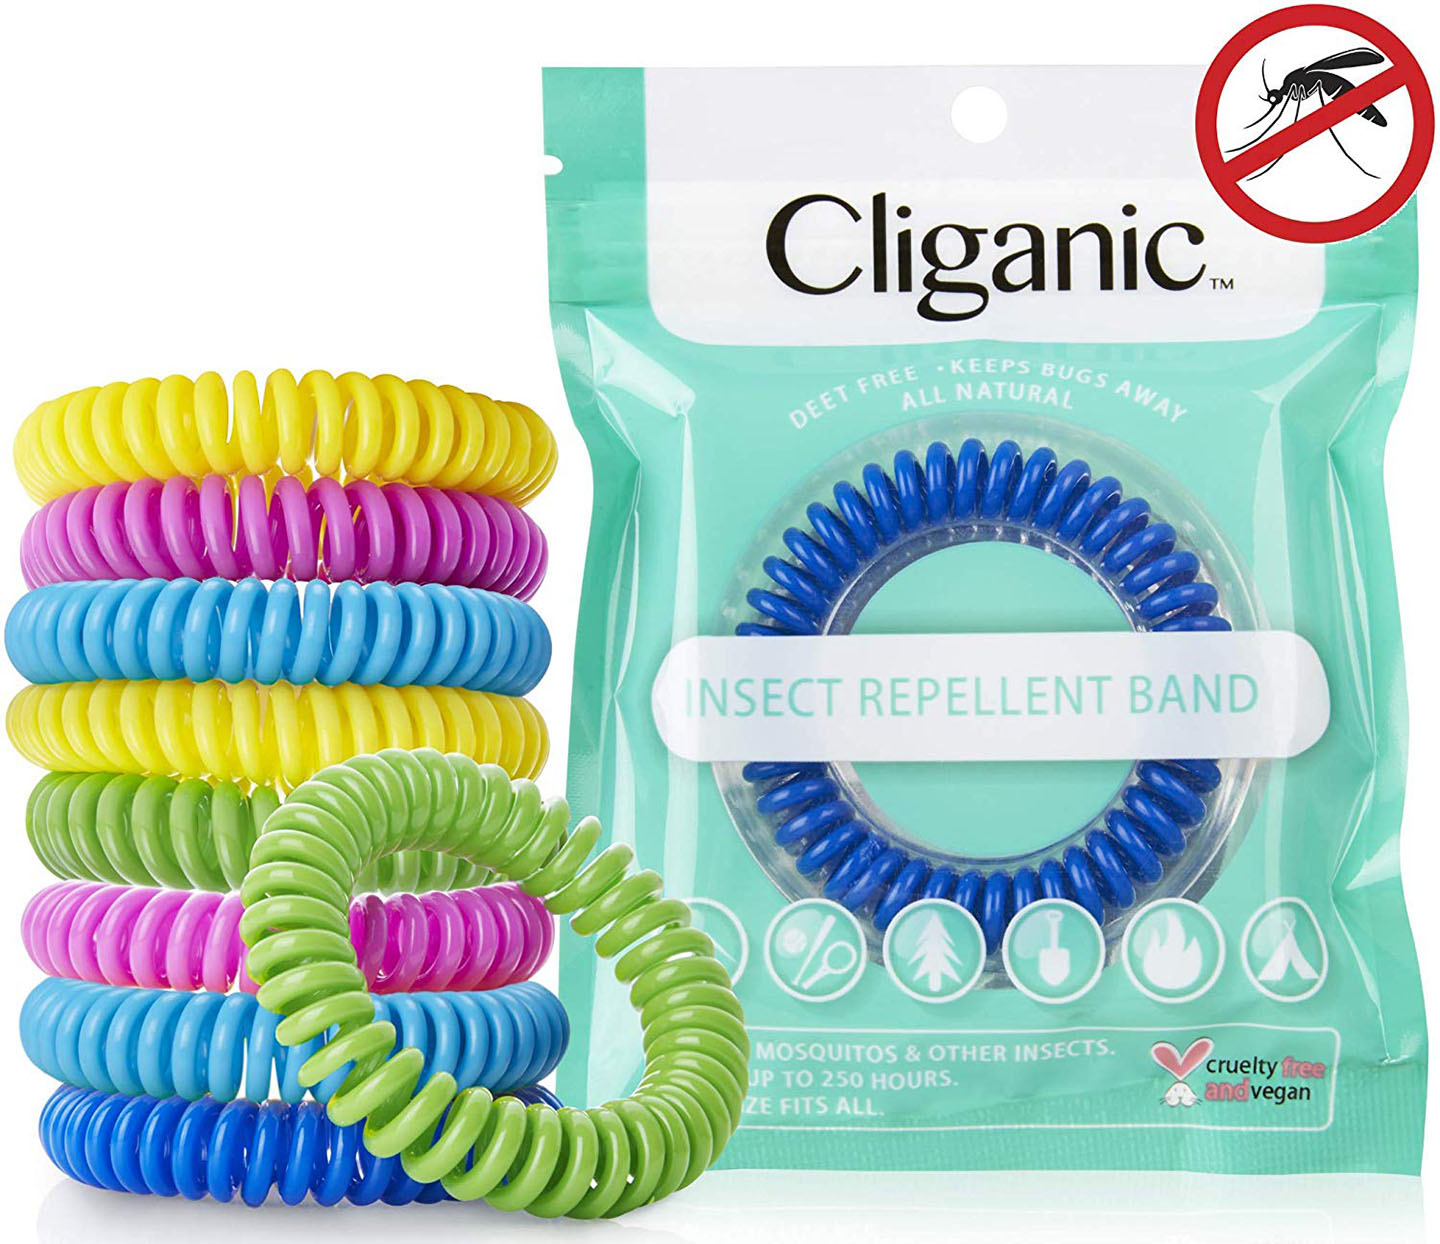 Turquoise packet with coiled plastic mosquito-repelling bracelets in blue, turquoise, yellow, lime green and hot pink